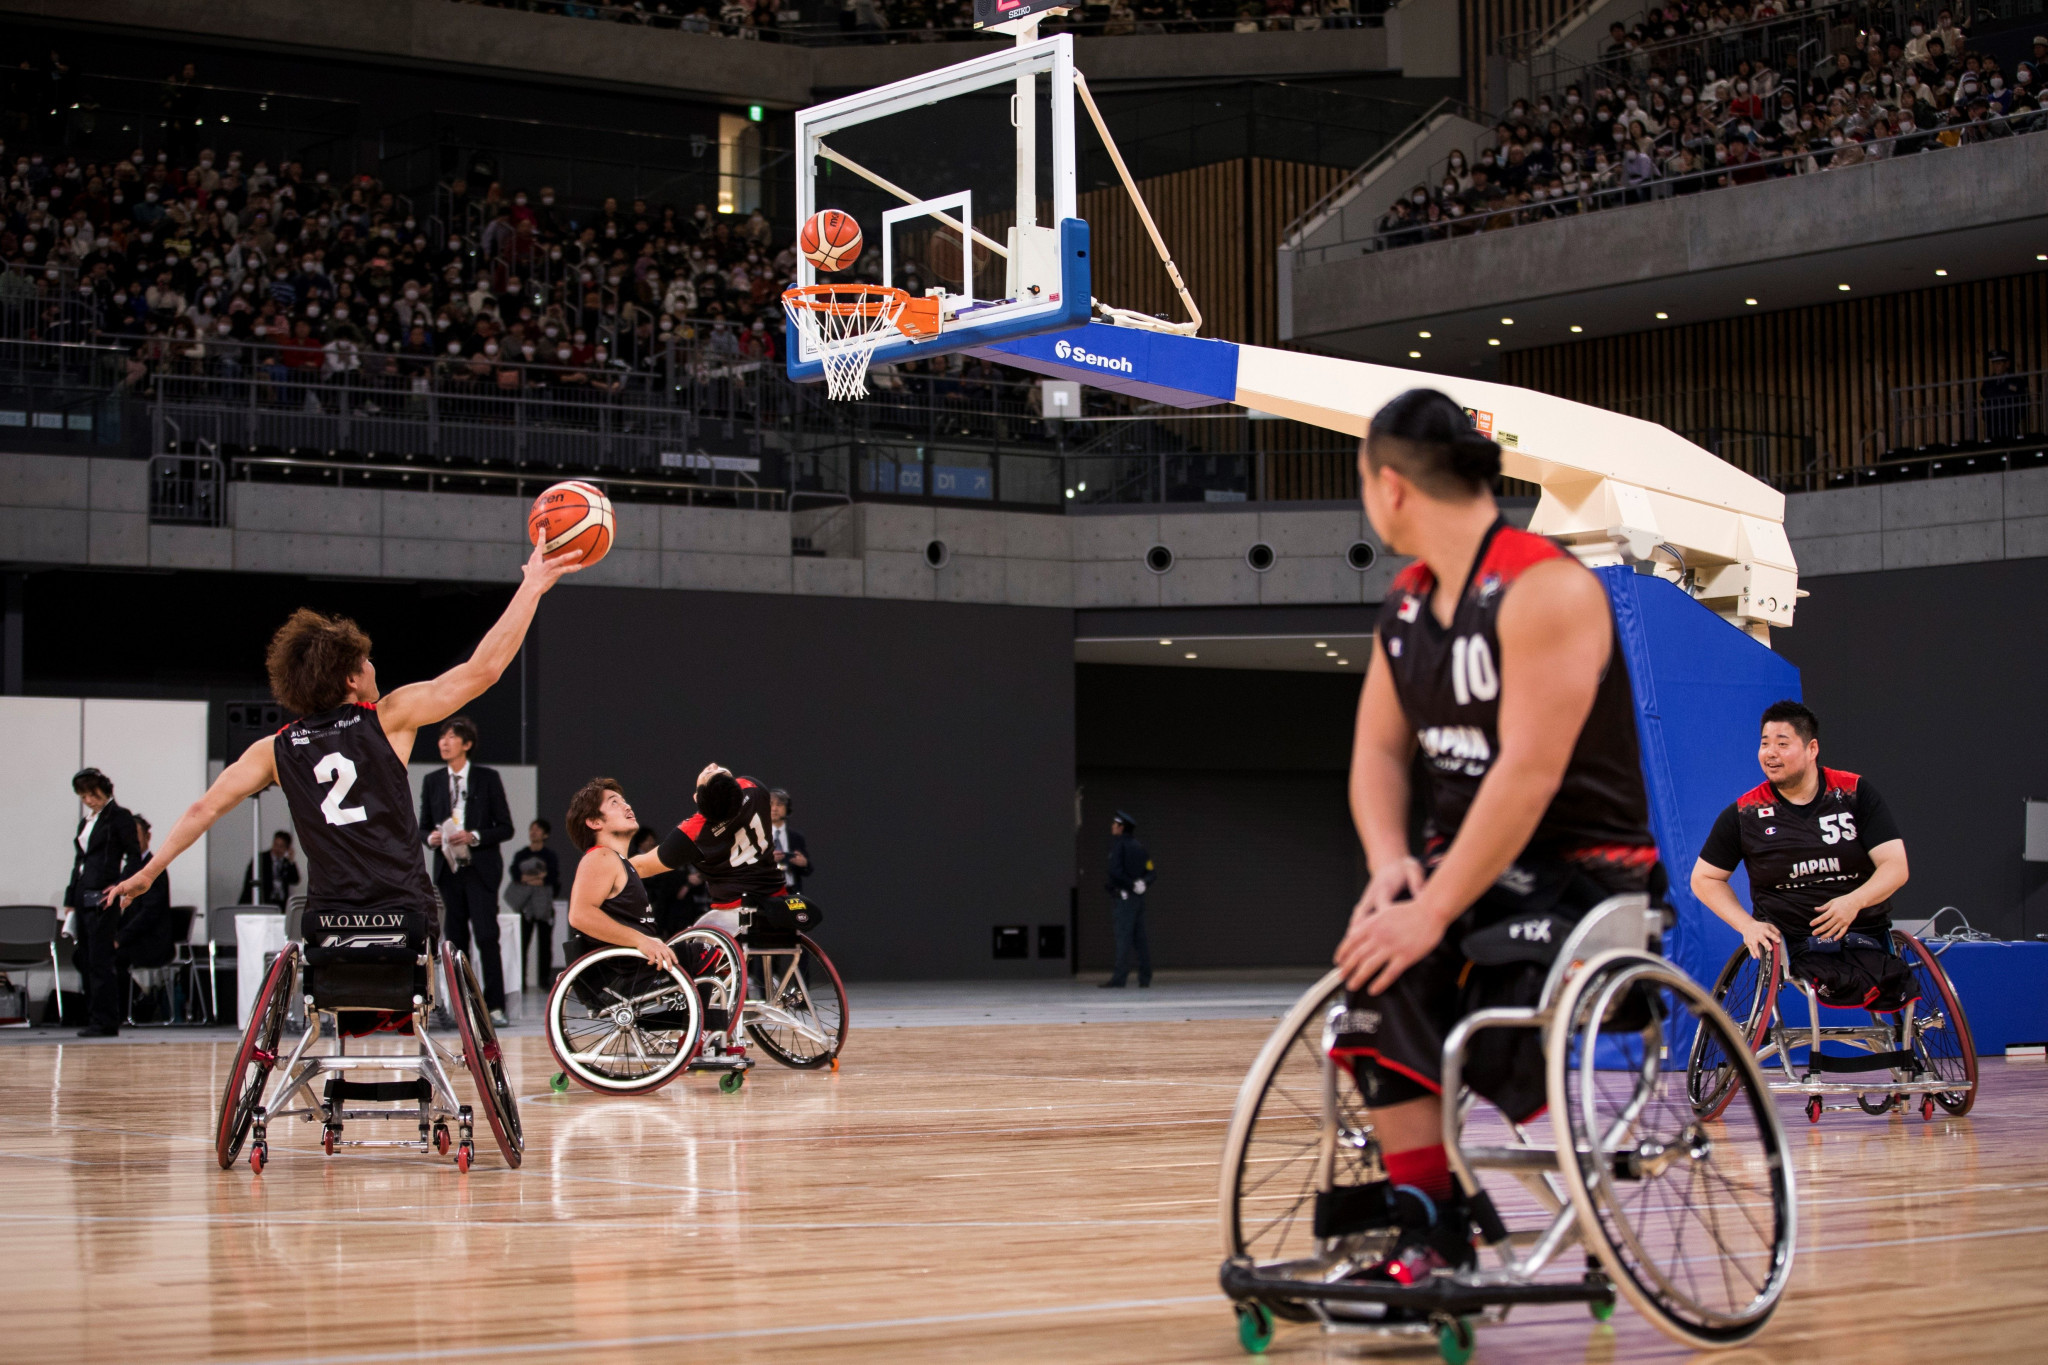 The International Wheelchair Basketball Federation has been ordered by the IPC to re-classify athletes ahead of this year's Paralympics ©Getty Images